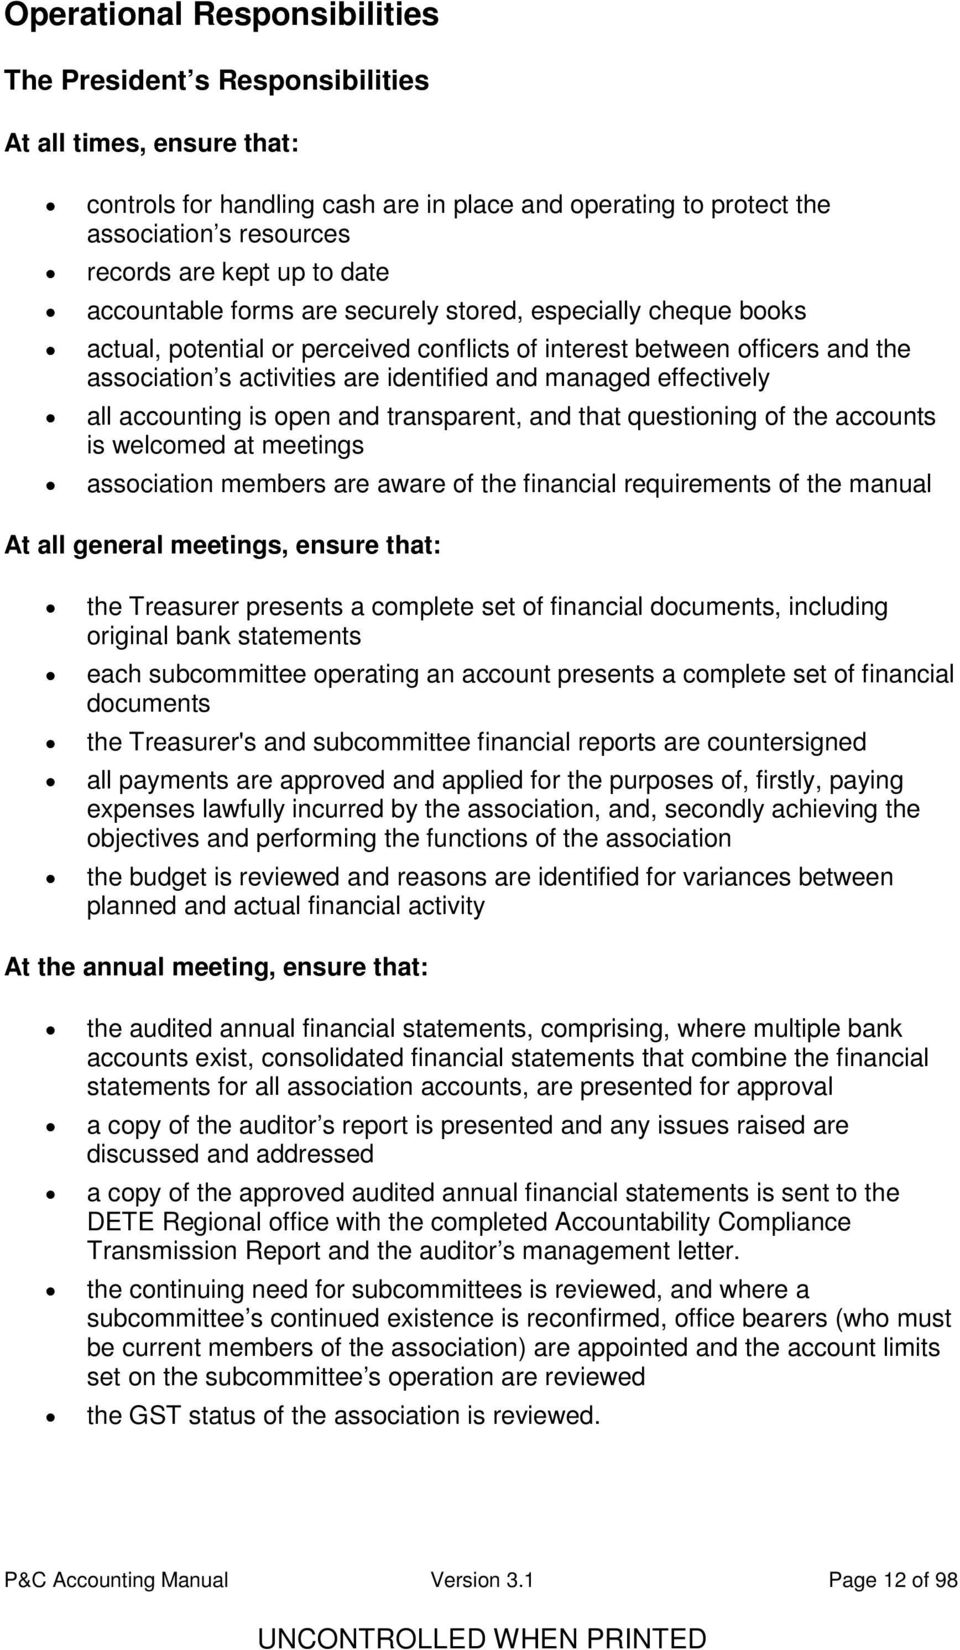 managed effectively all accounting is open and transparent, and that questioning of the accounts is welcomed at meetings association members are aware of the financial requirements of the manual At